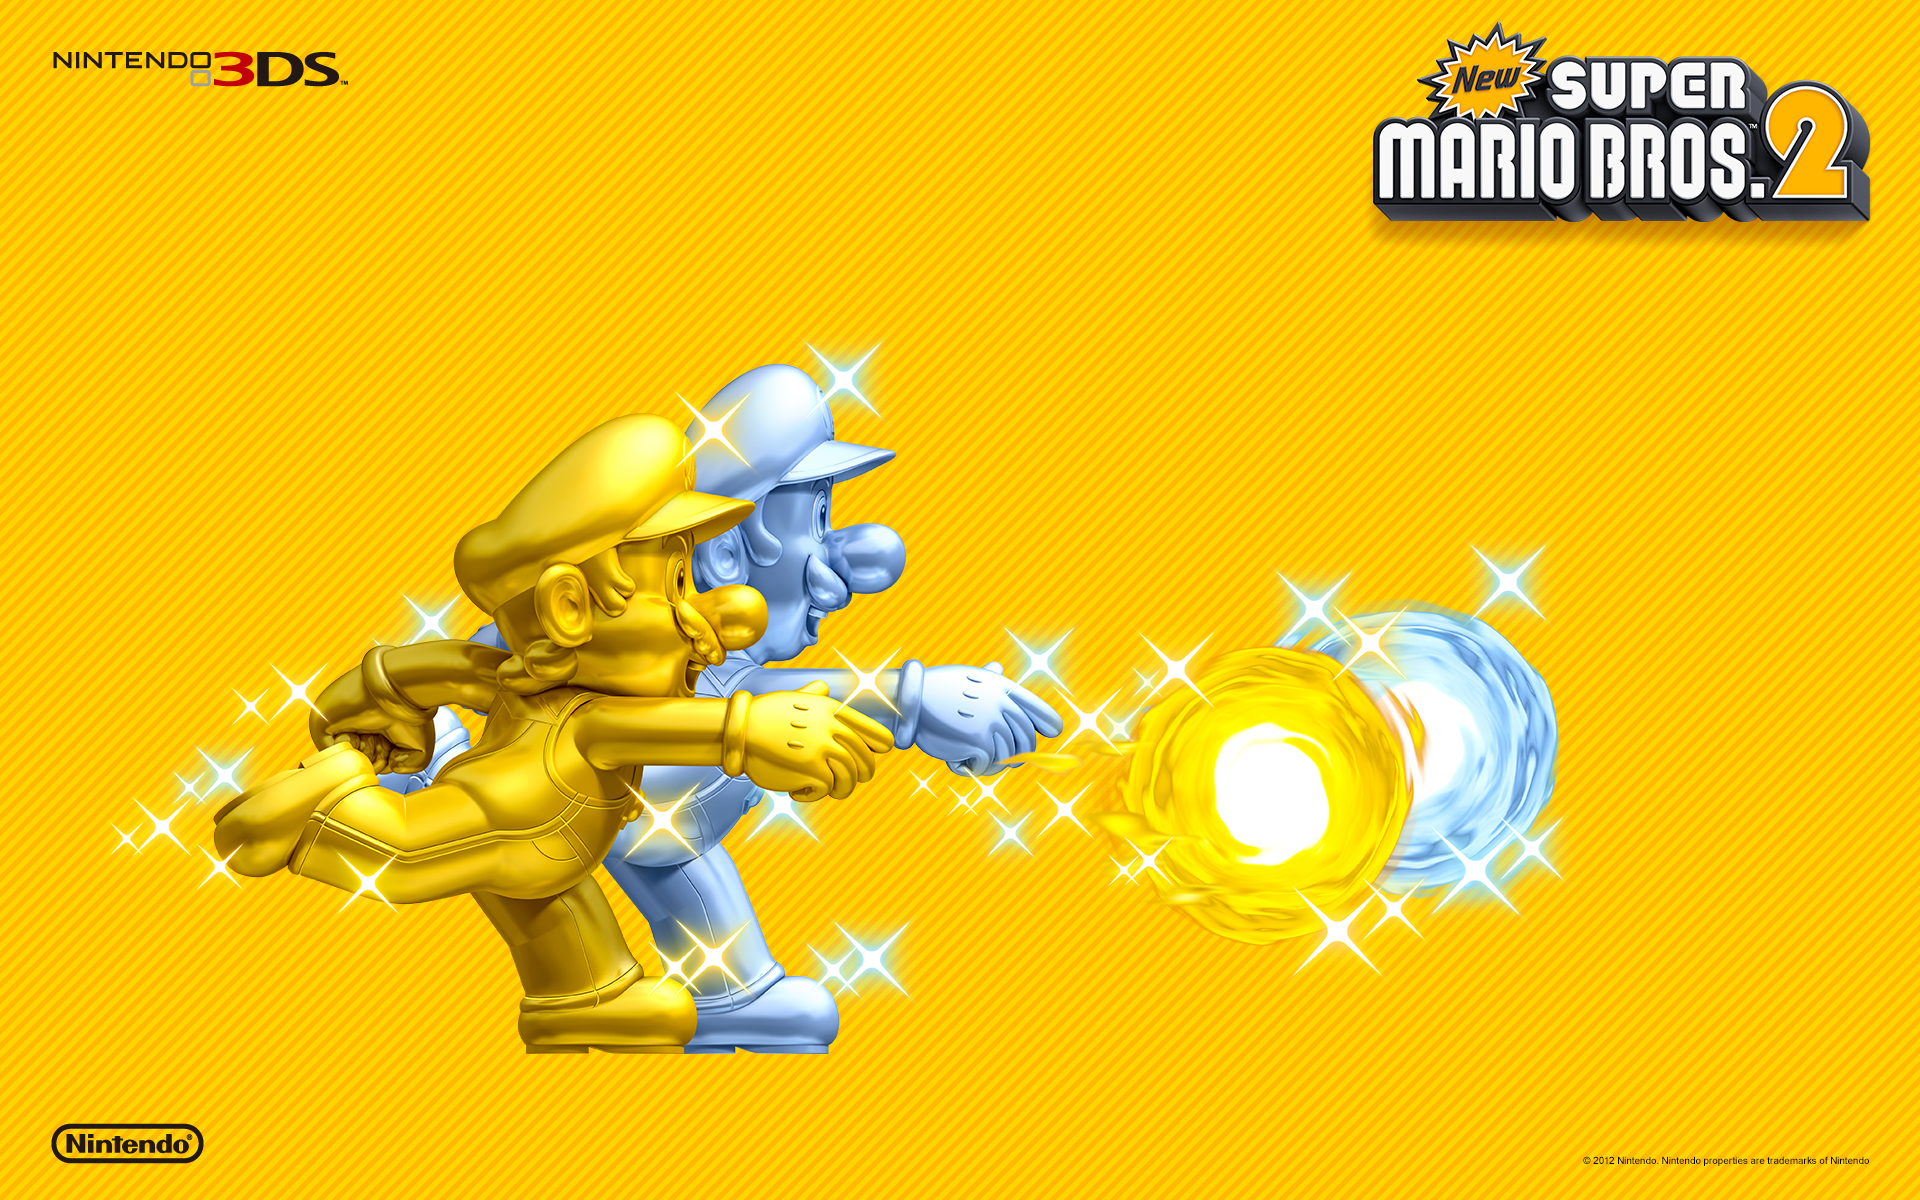 Super mario bros 2 gold mario silver luigi wallpaper new super mario bros 2 gold mario silver luigi wallpaper altavistaventures Gallery